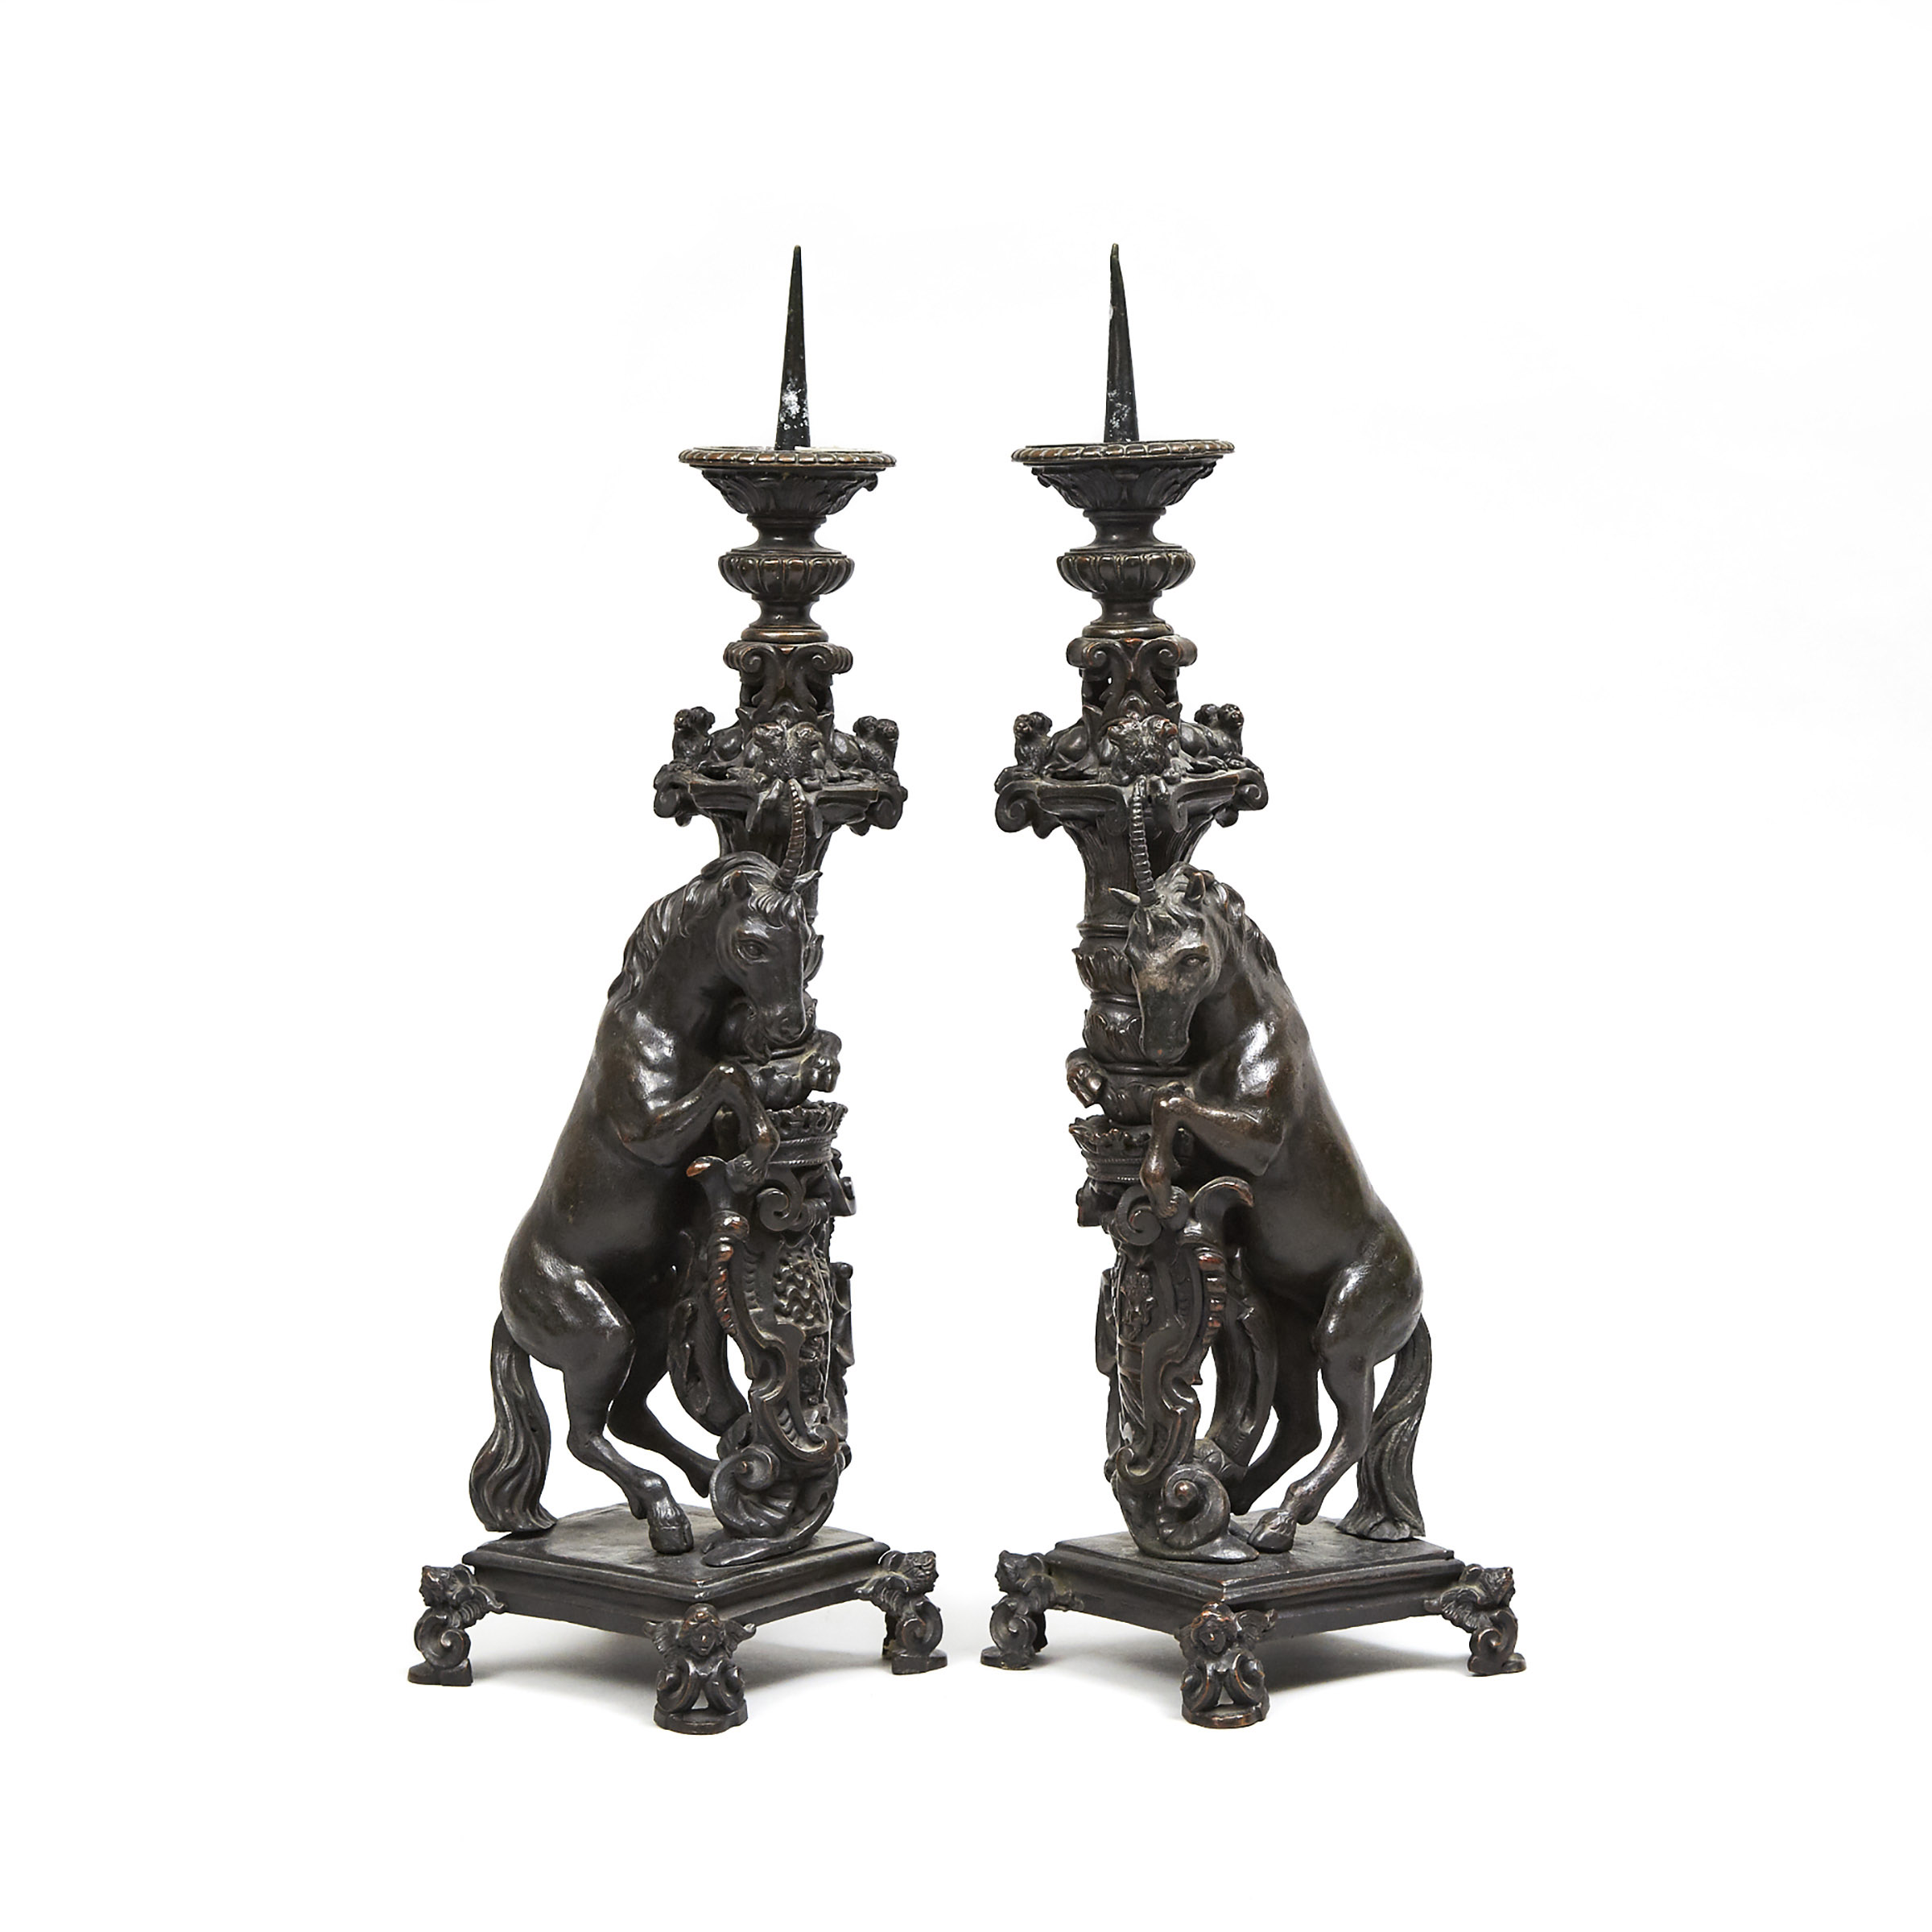 Pair of North Italian Renaissance Bronze Armourial Pricket Candlesticks, 16th or early 17th century